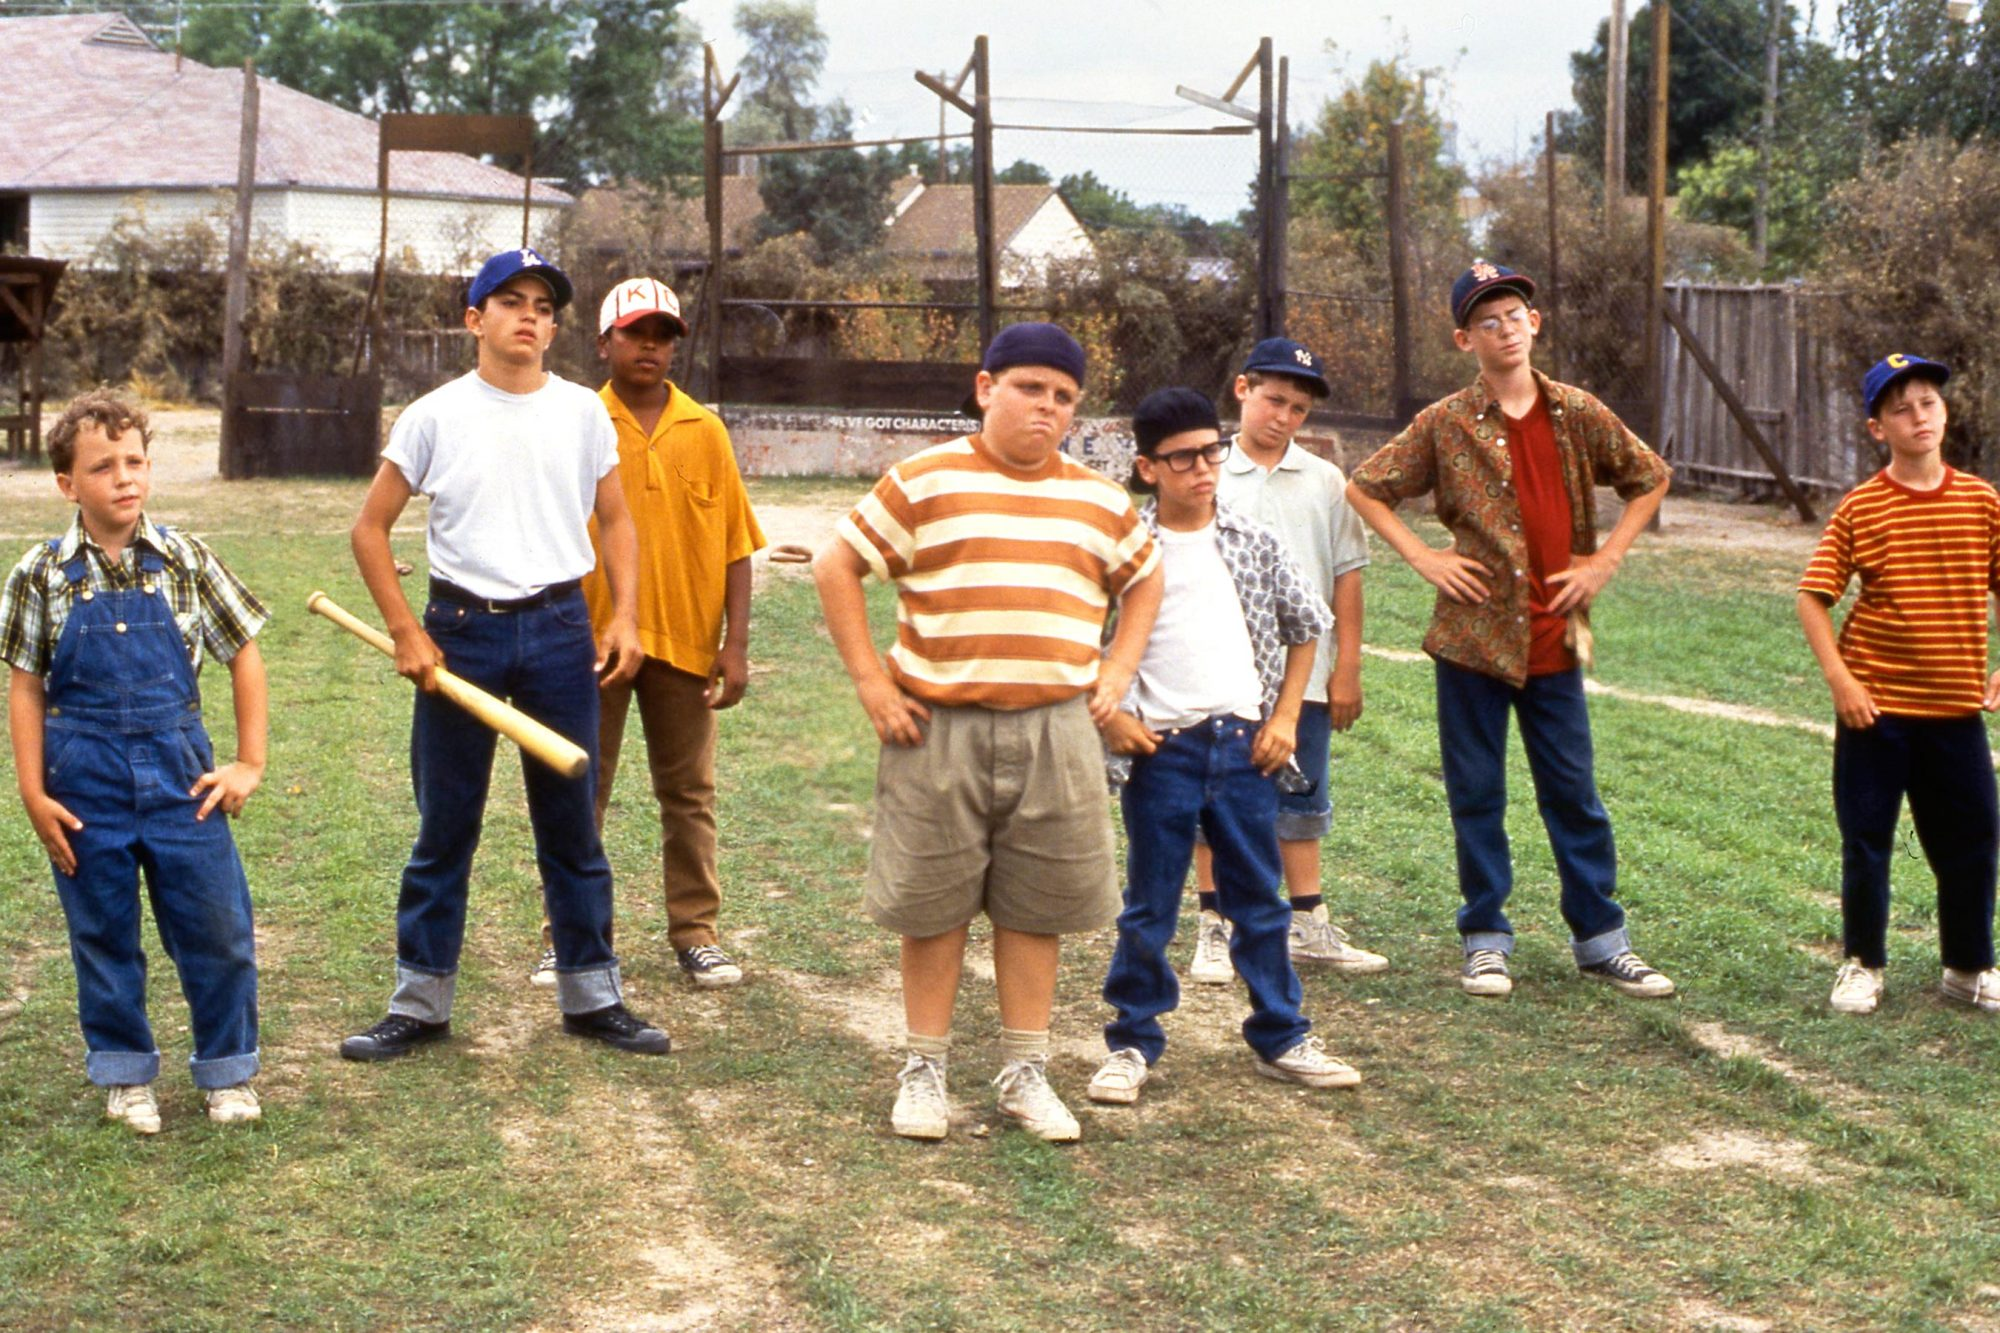 Remembering The Sandlot